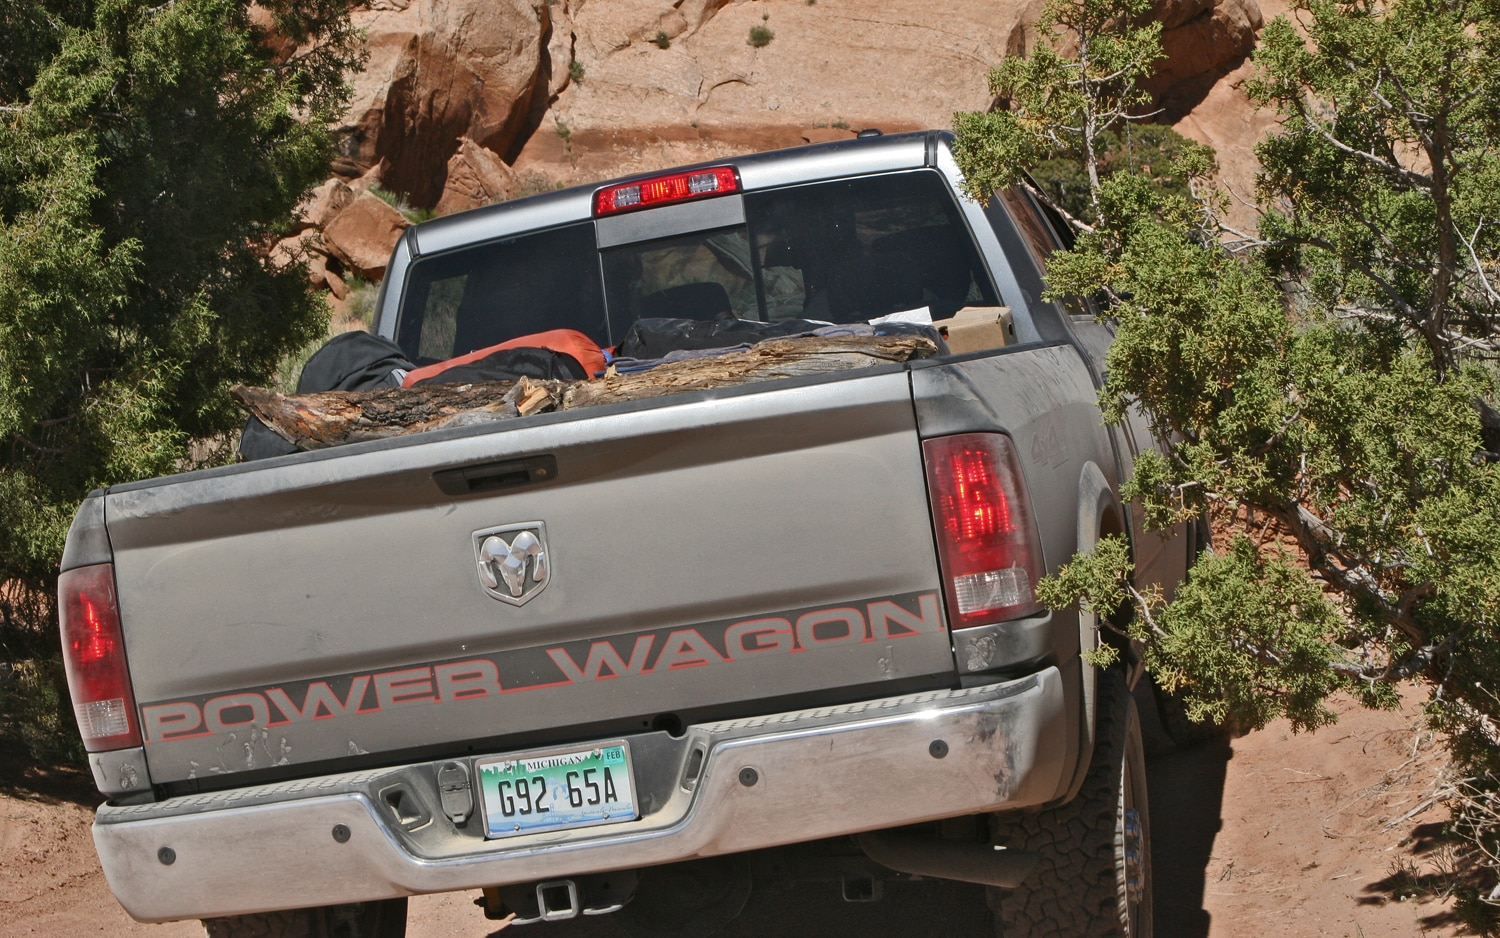 Ram Power Wagon Upper Muely Twist Canyon Rear View